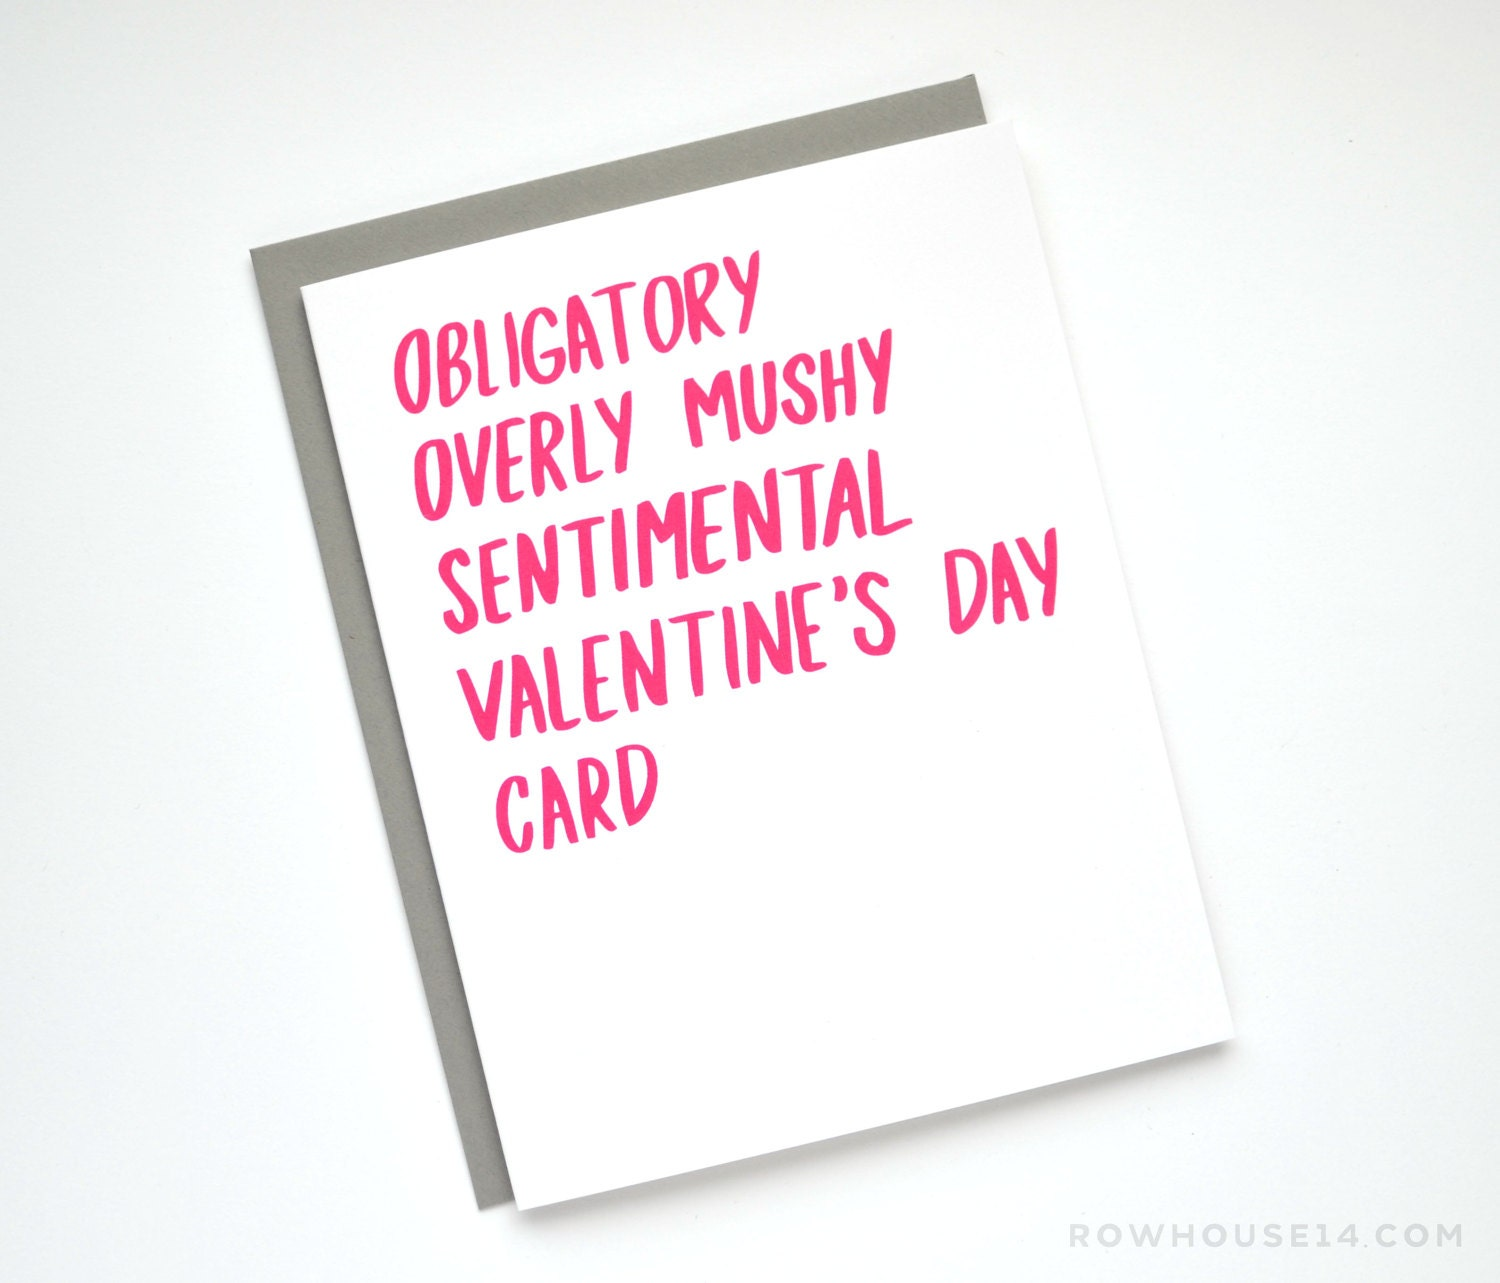 Valentine Card Funny Valentines Day Card Obligatory – Mushy Valentine Cards